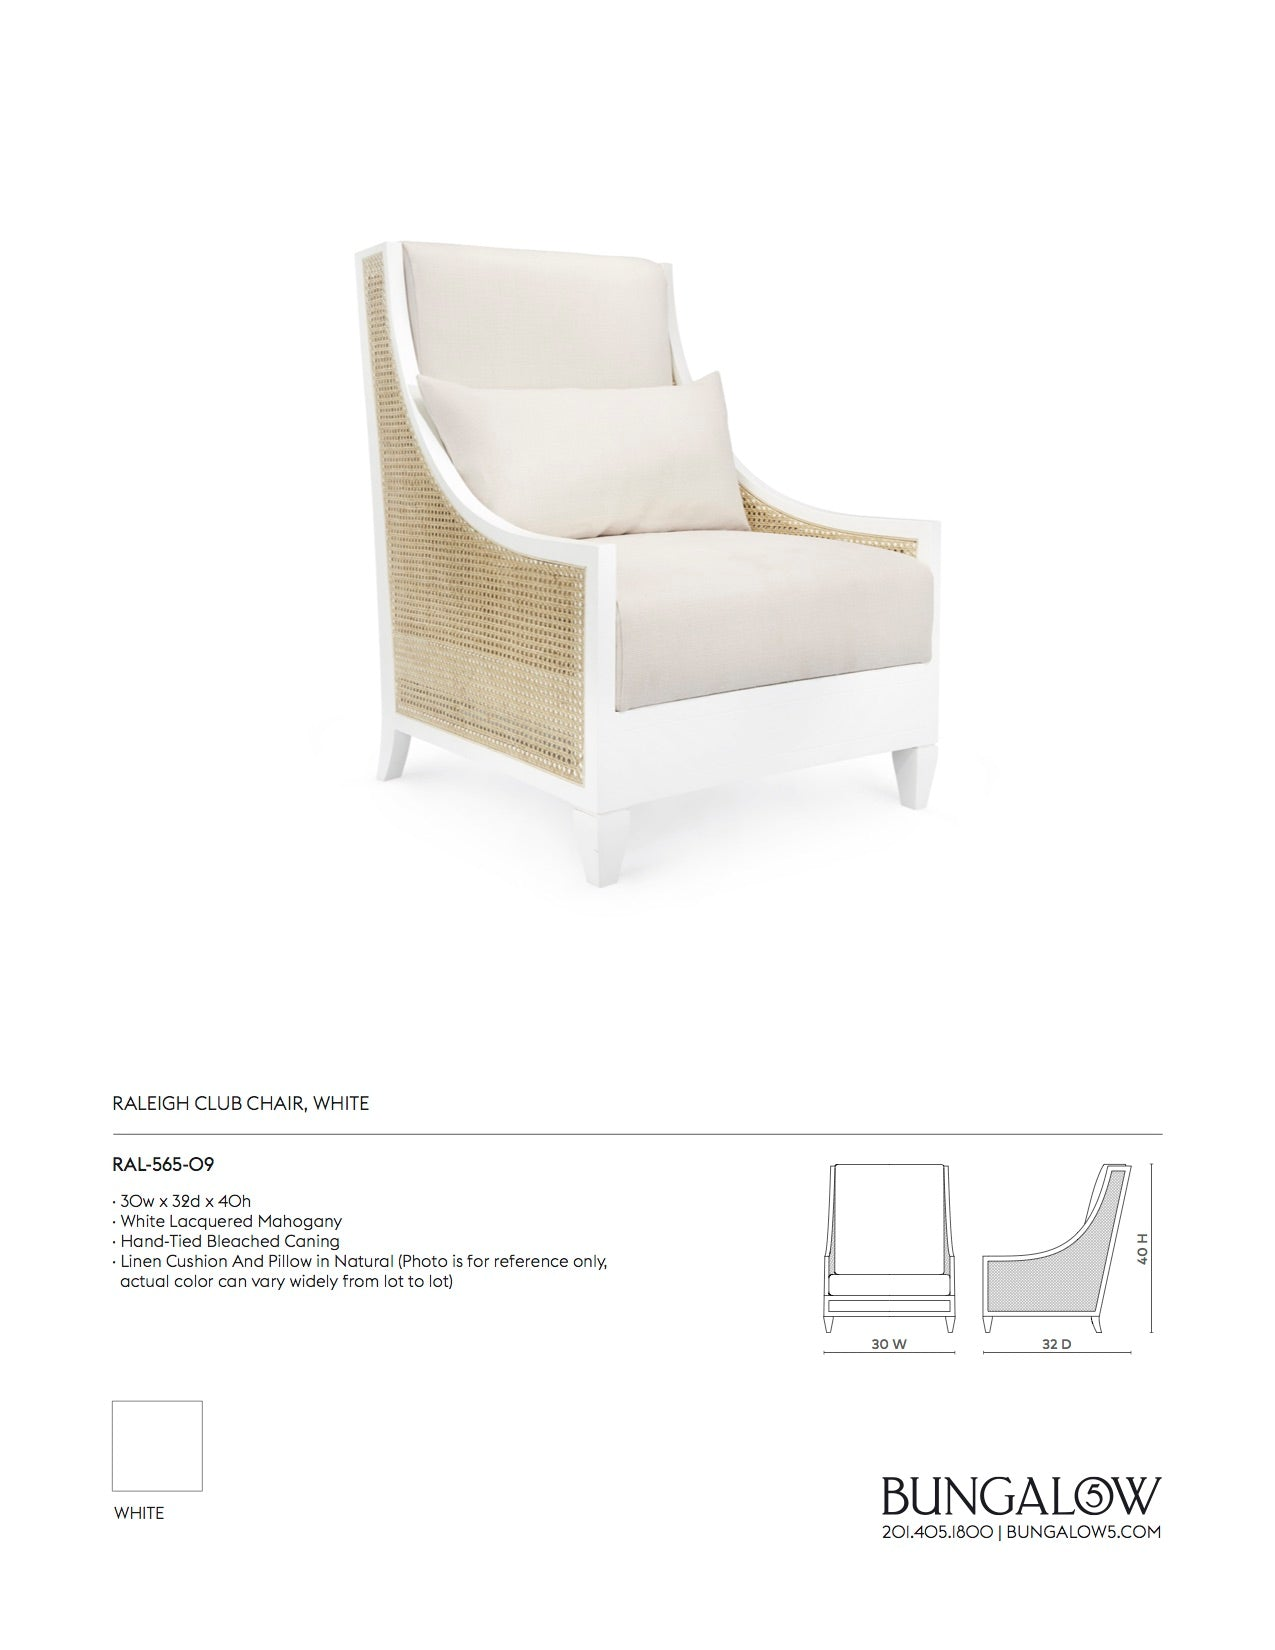 Bungalow 5 Raleigh Club Chair White Tearsheet